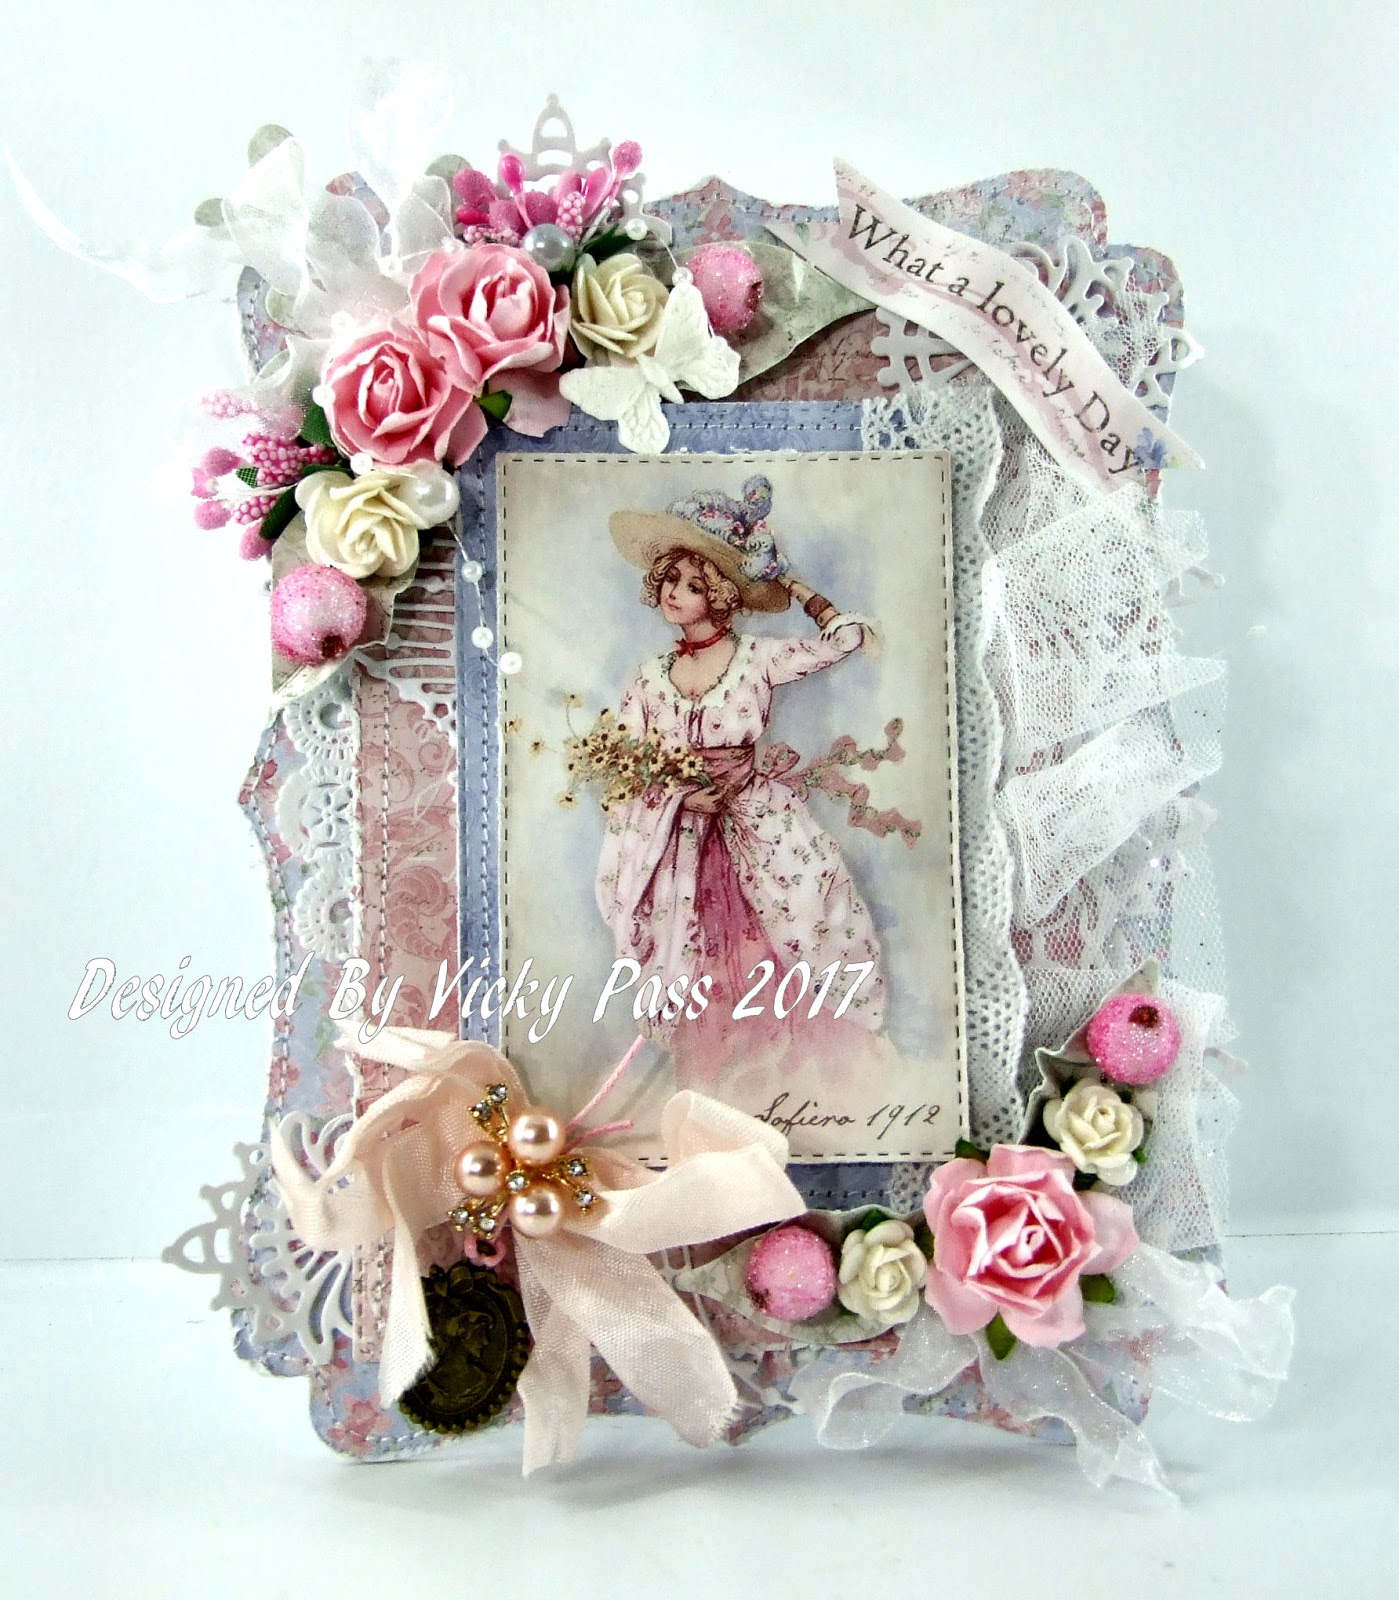 new dies whats more is new fantasy dies from noor design uk oh my